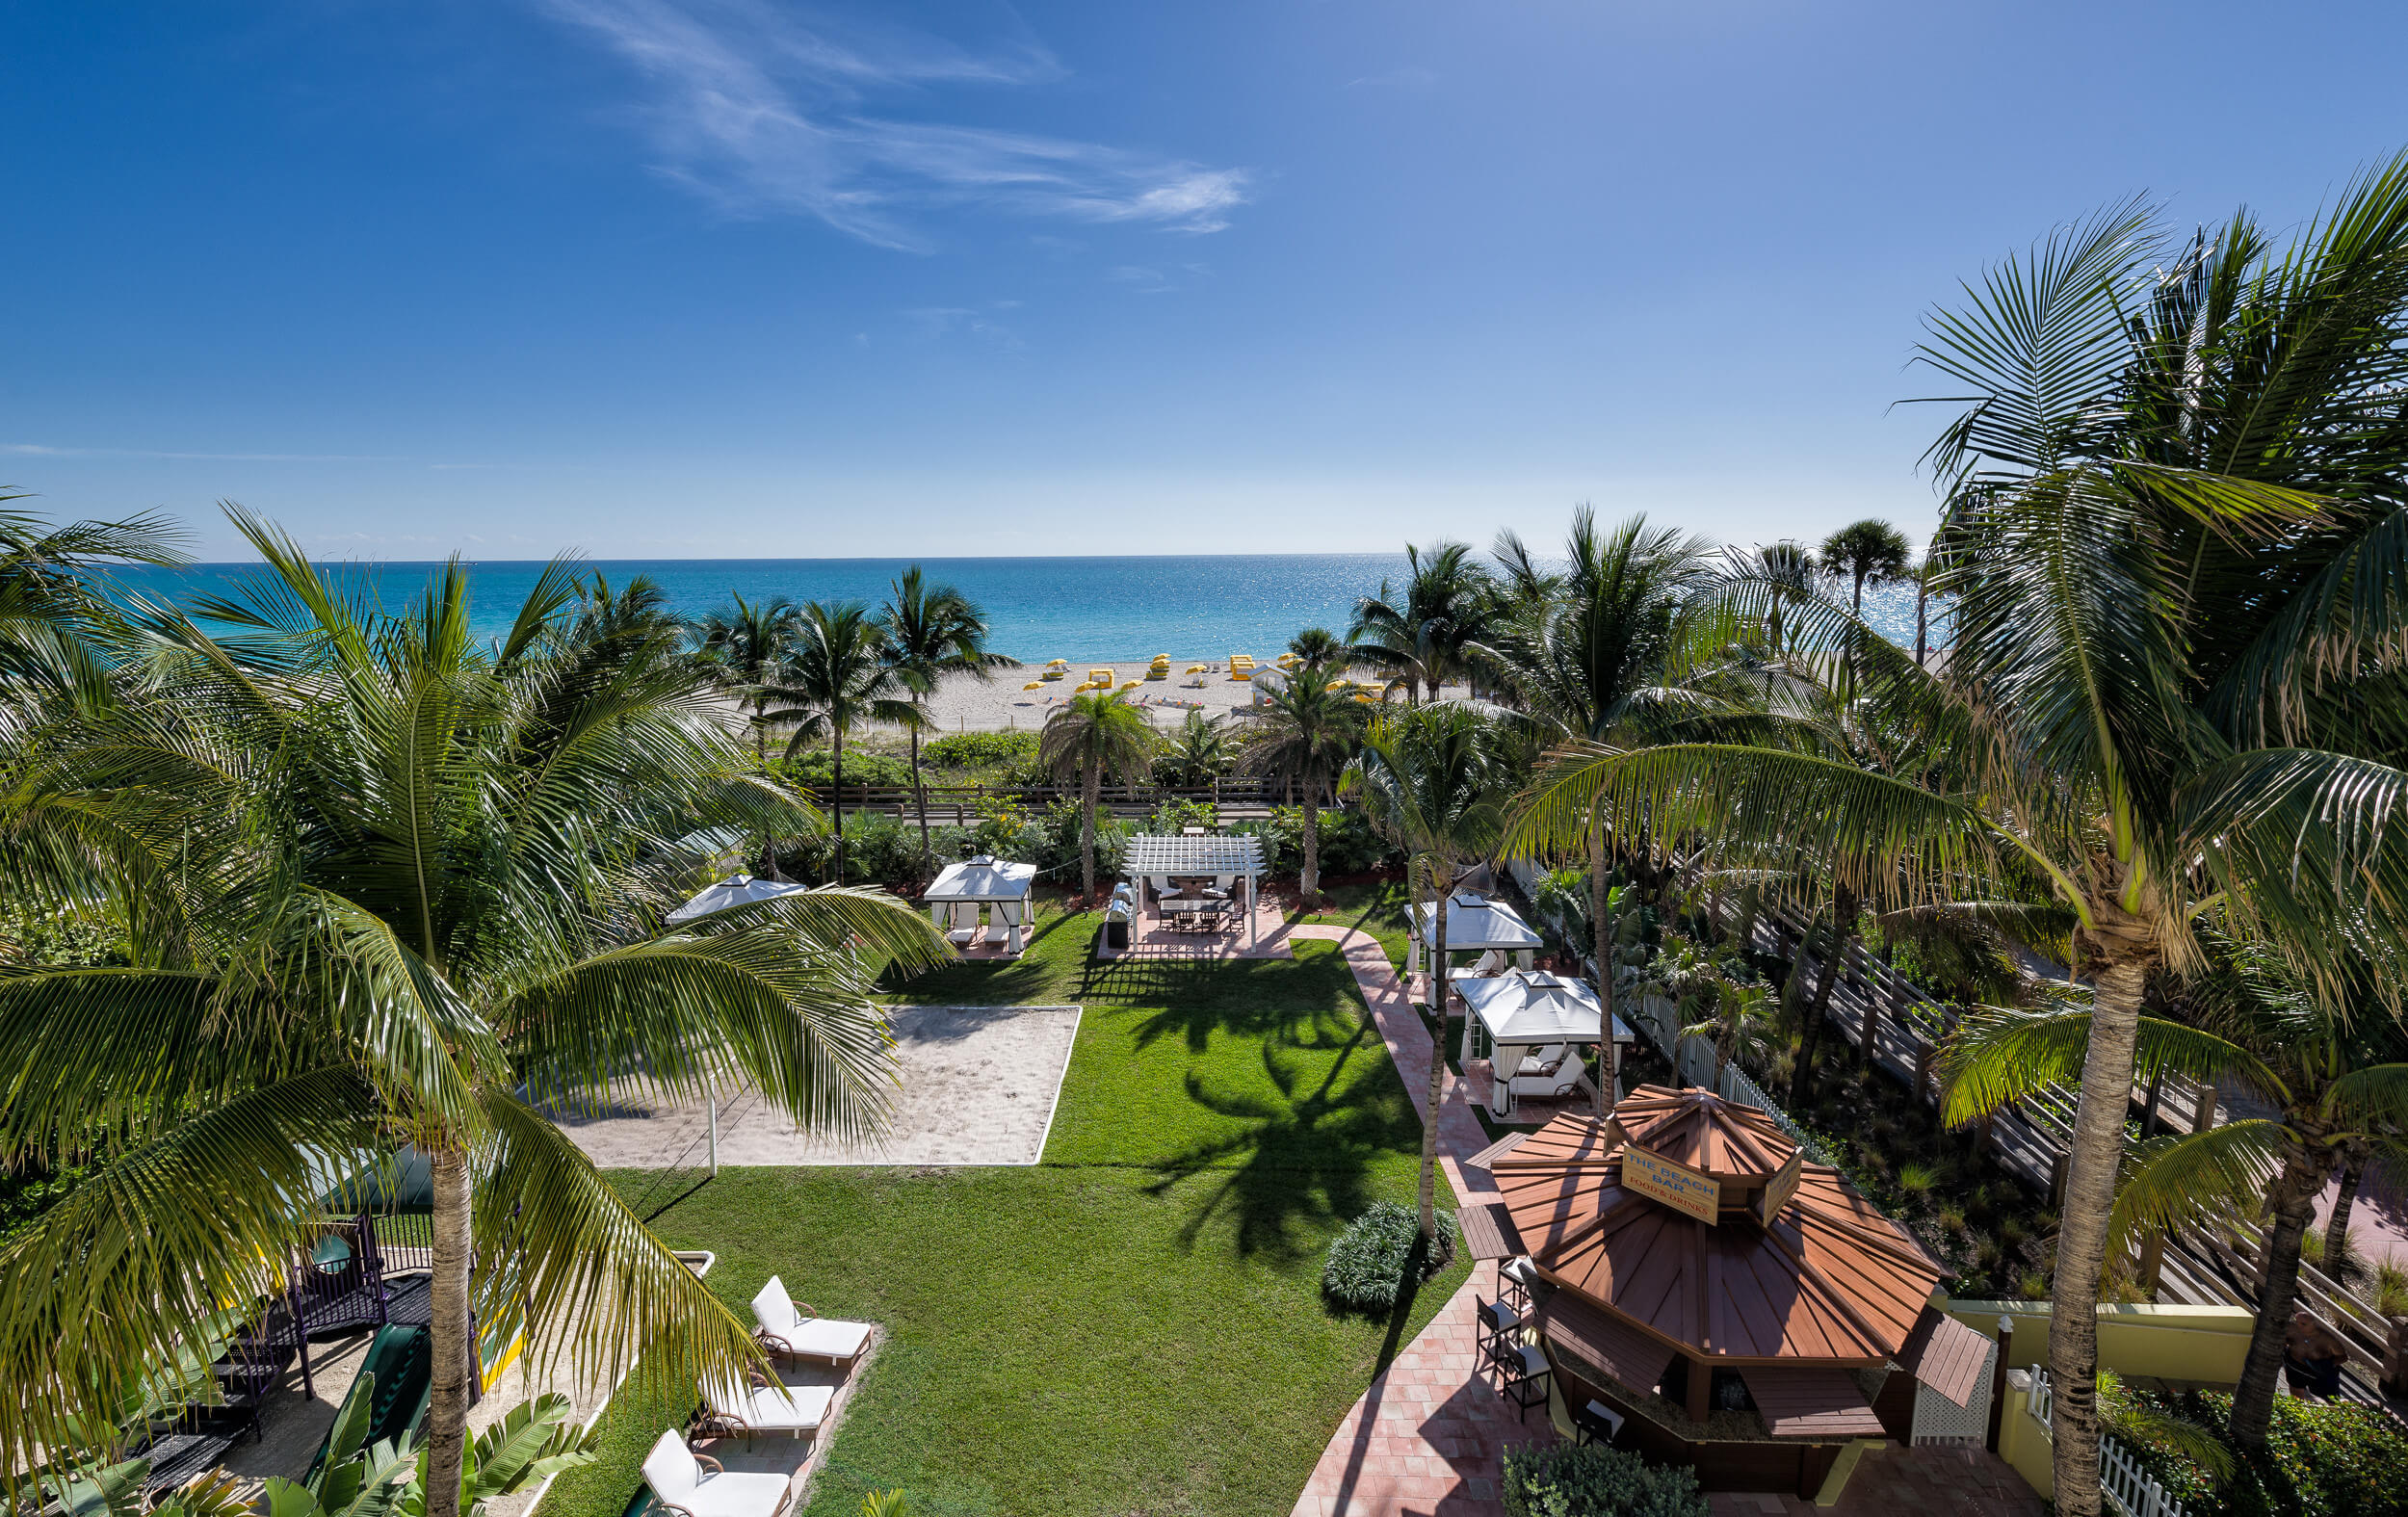 Resort grounds with volleyball court, beach bar and private cabanas | Westgate South Beach Oceanfront Resort